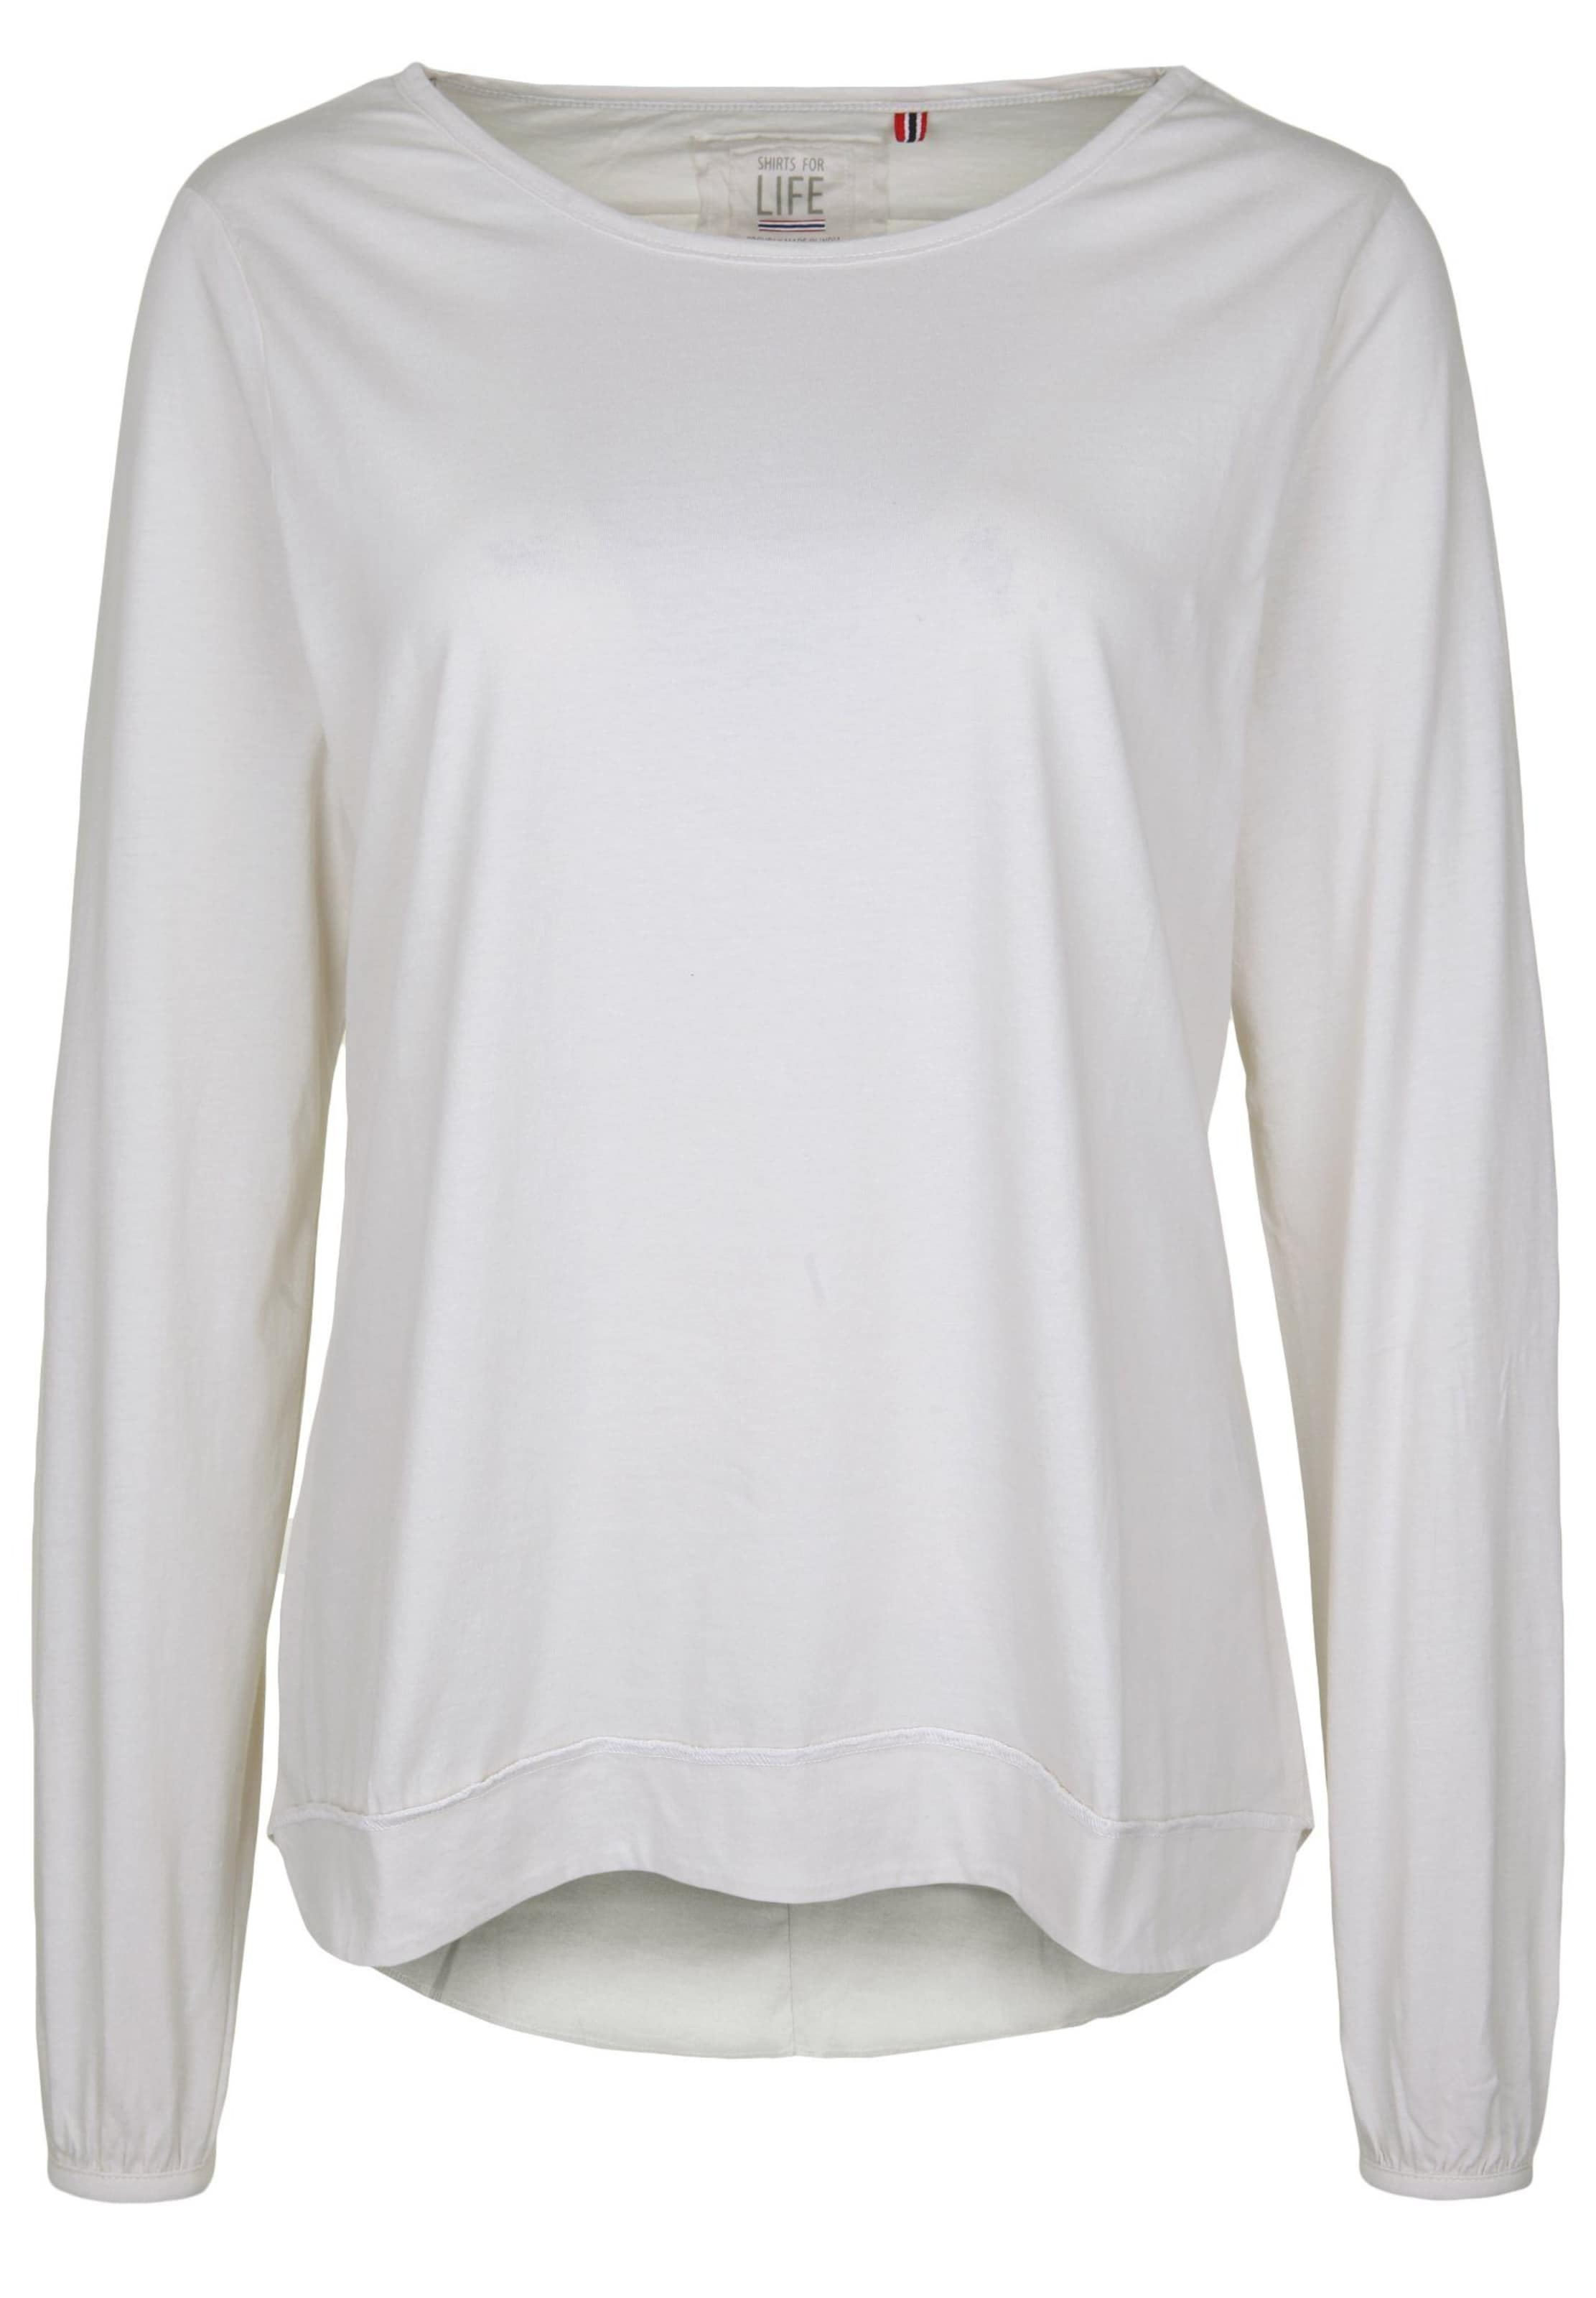 Womens Weiß Longsleeve For 'carina' Shirts Life In dCexoWBr